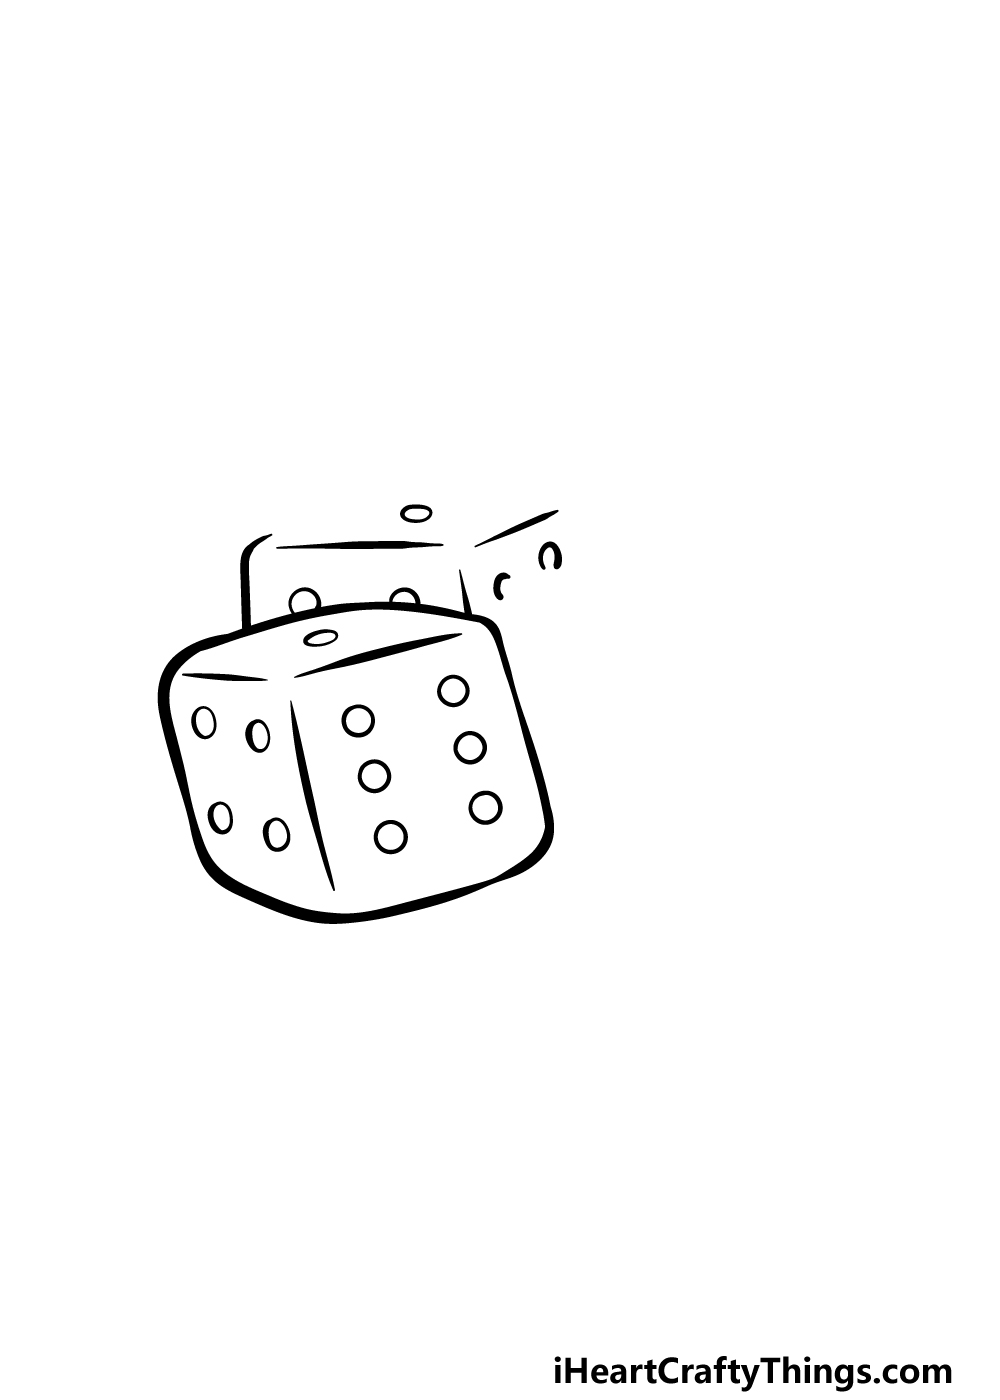 drawing the dice step 2